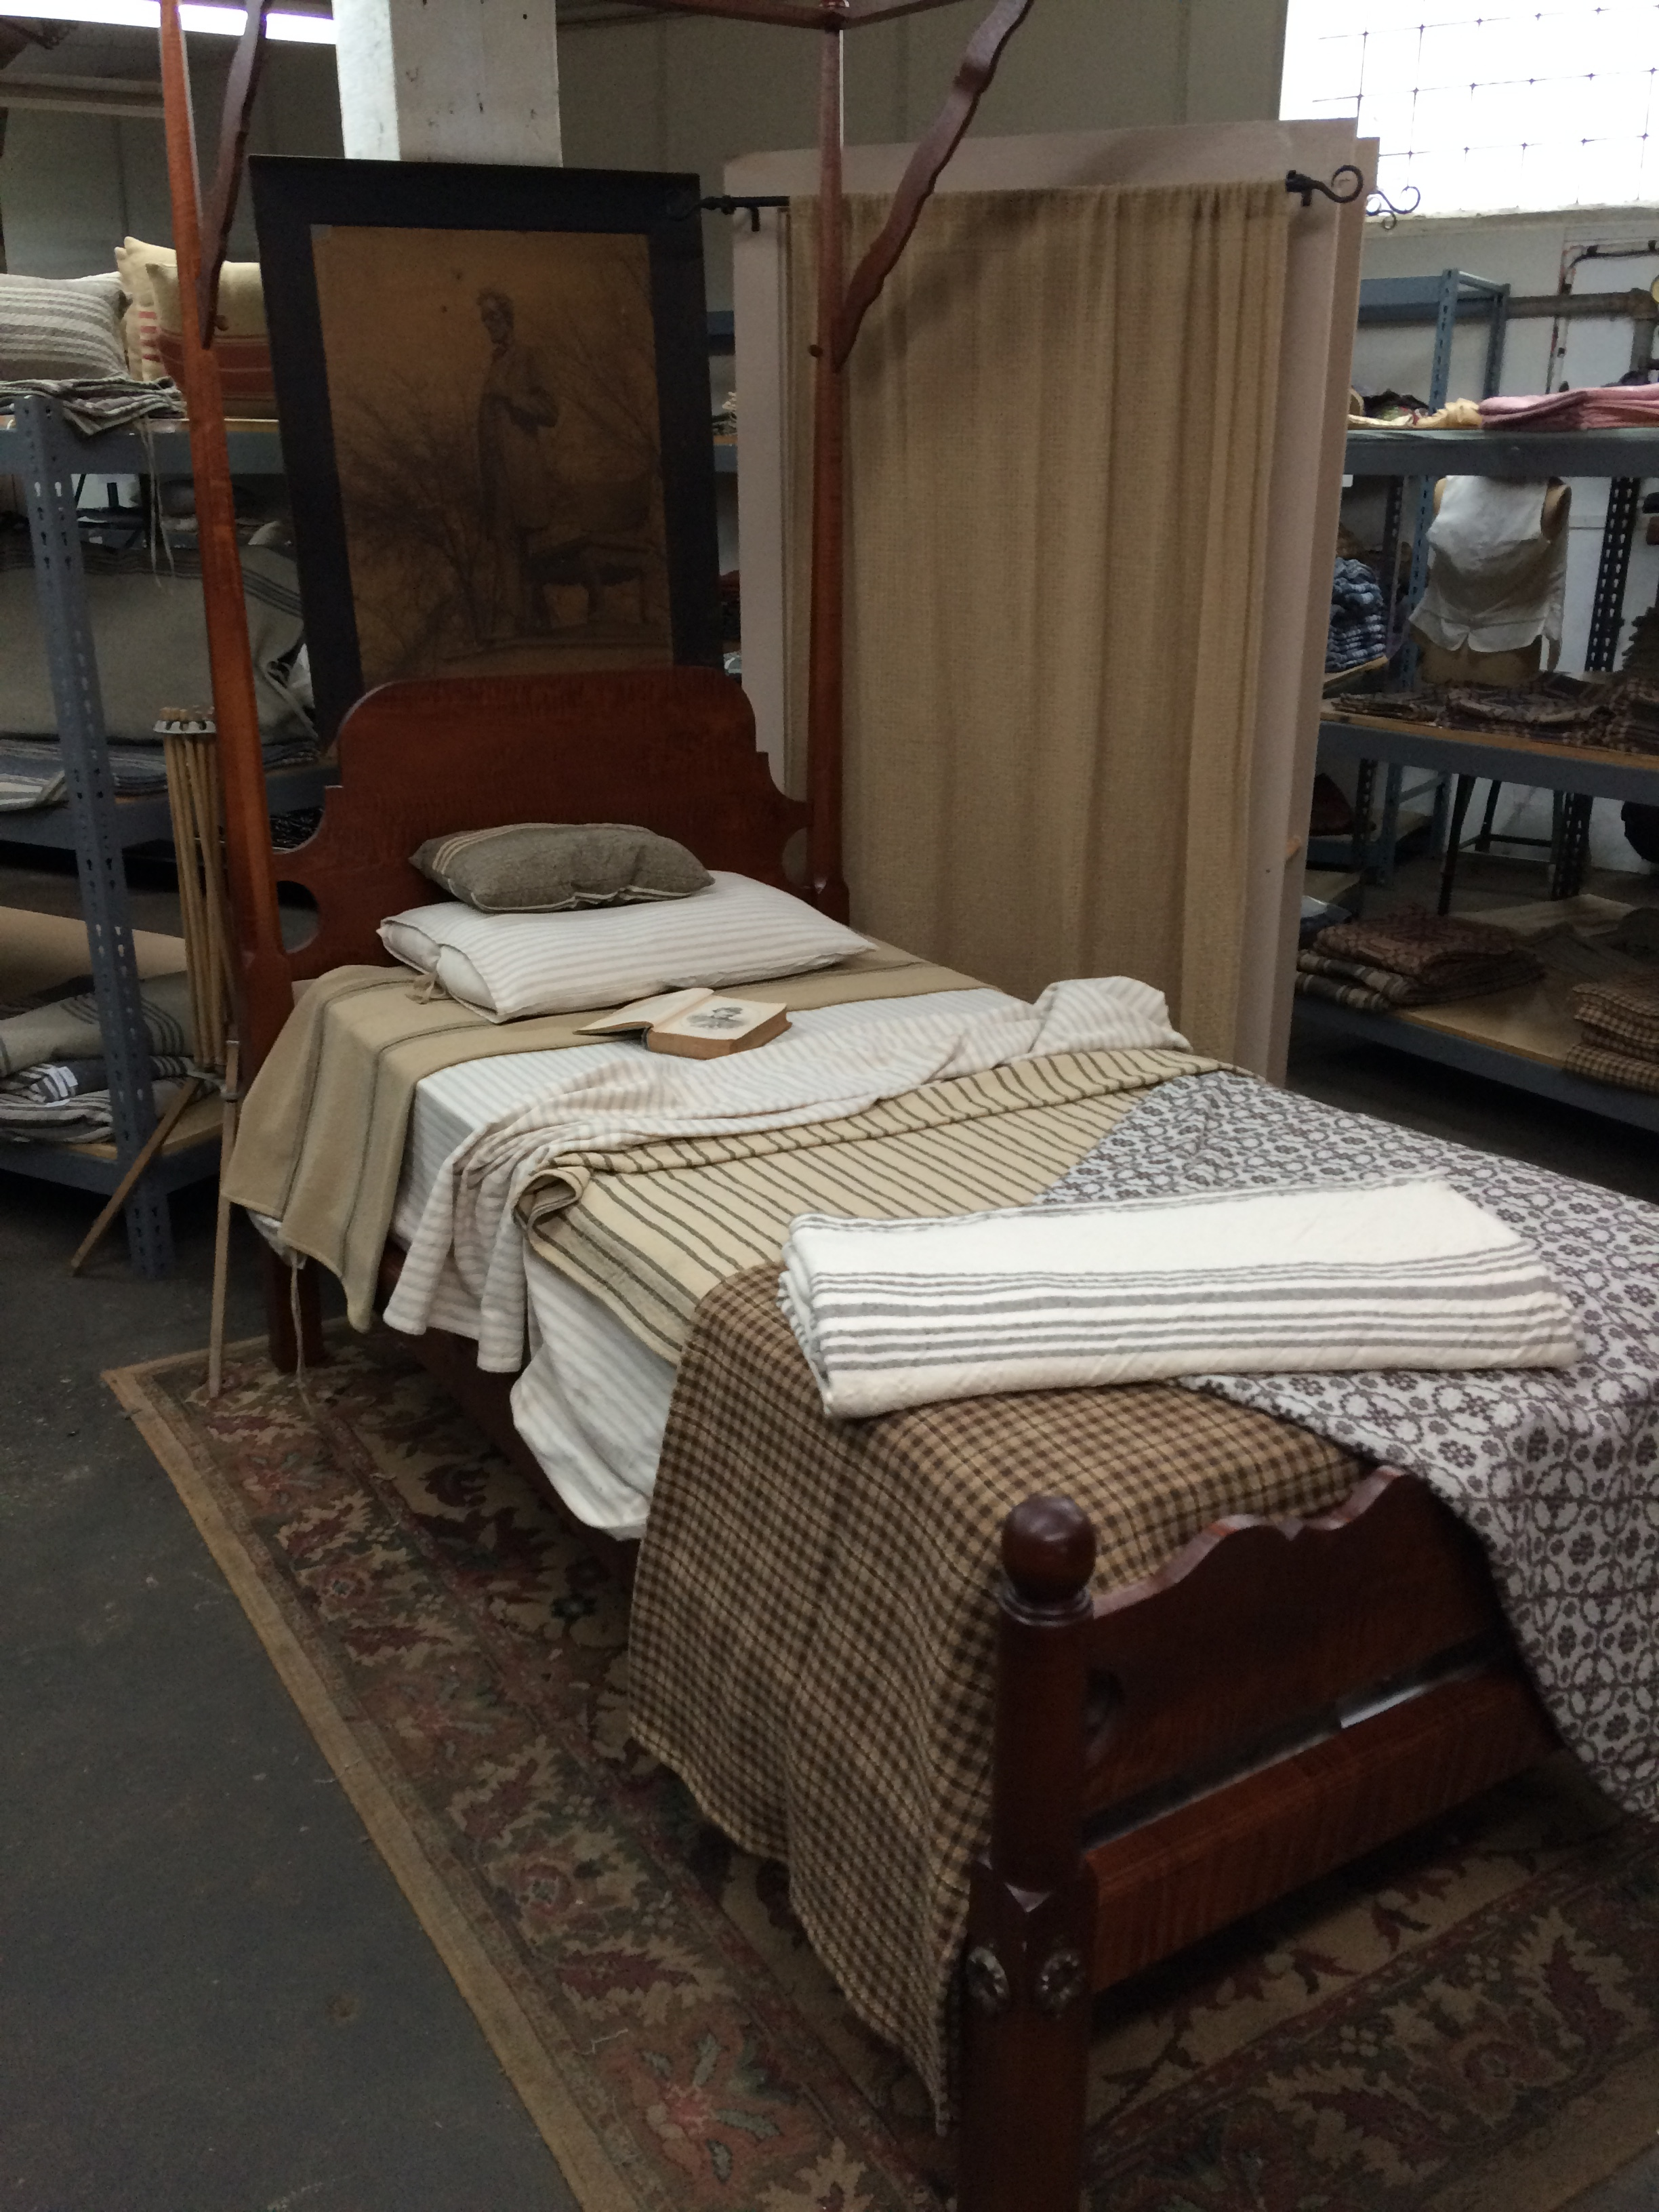 A display of some of the more traditional offerings. There are pillows, throws, bedspreads and more being woven here!